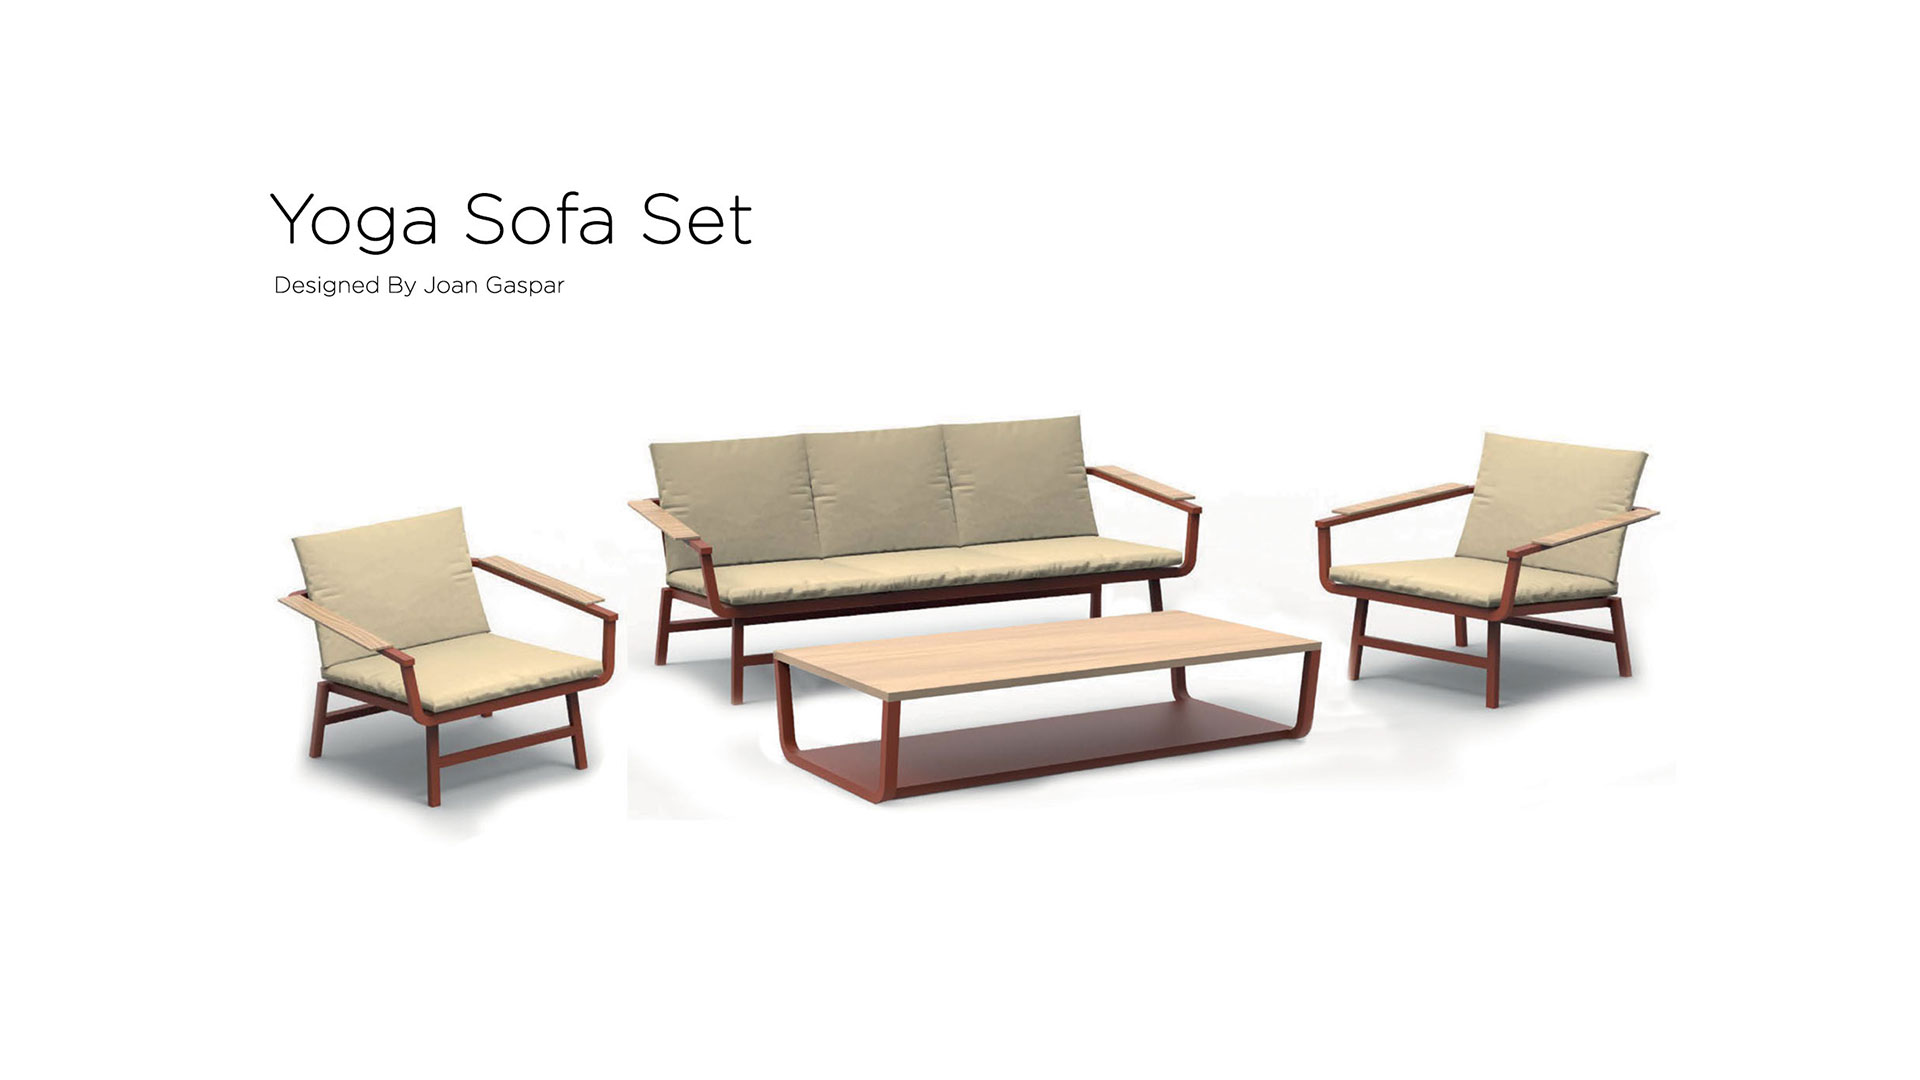 Yoga Sofa Set